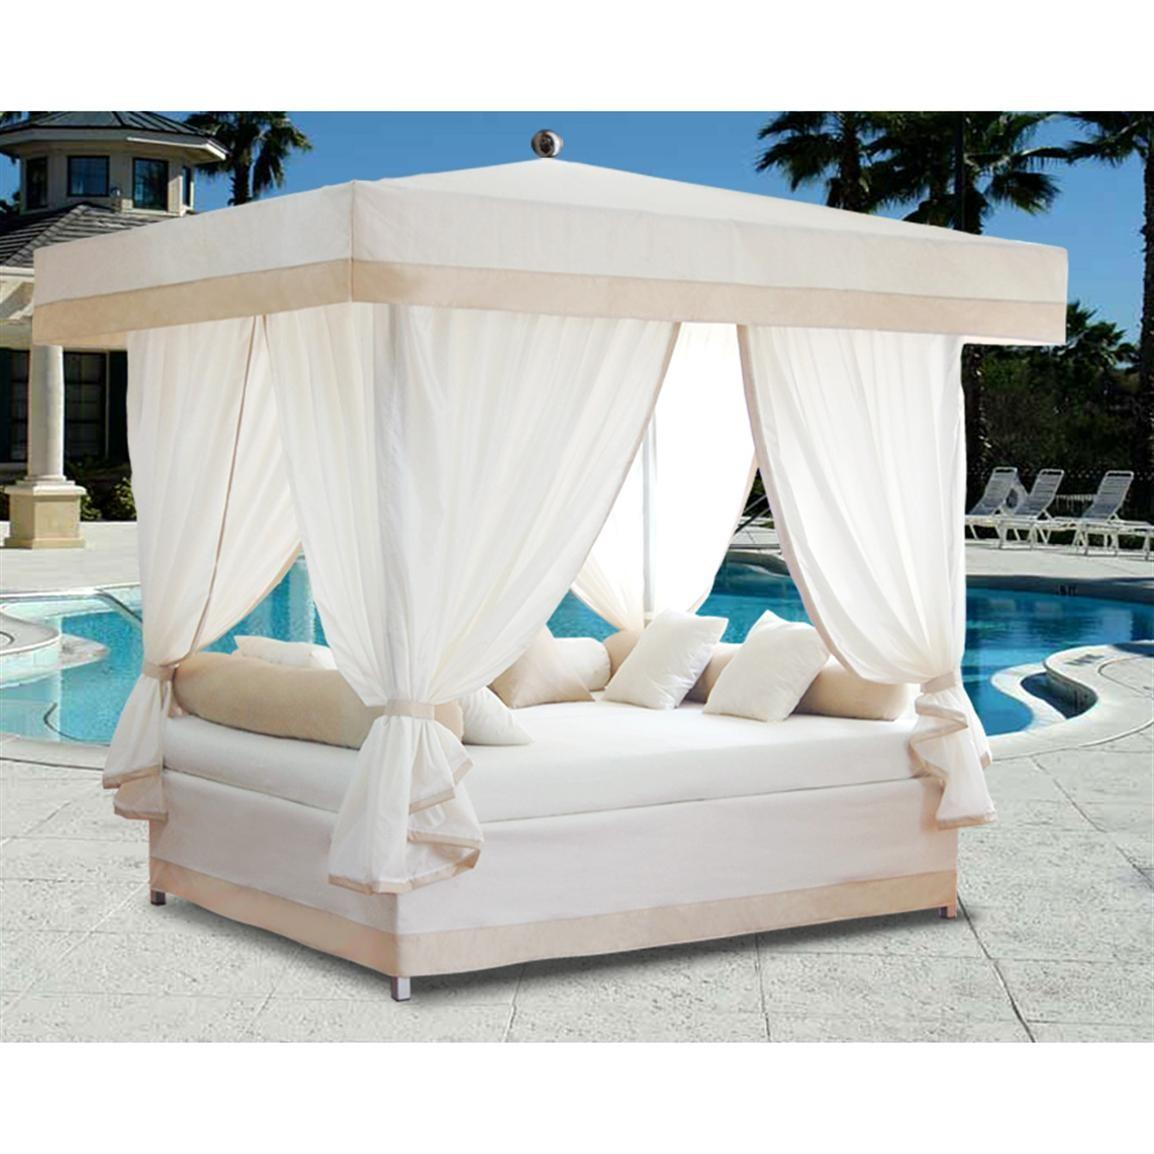 Luxury Outdoor Lounge Bed Canopy Patio